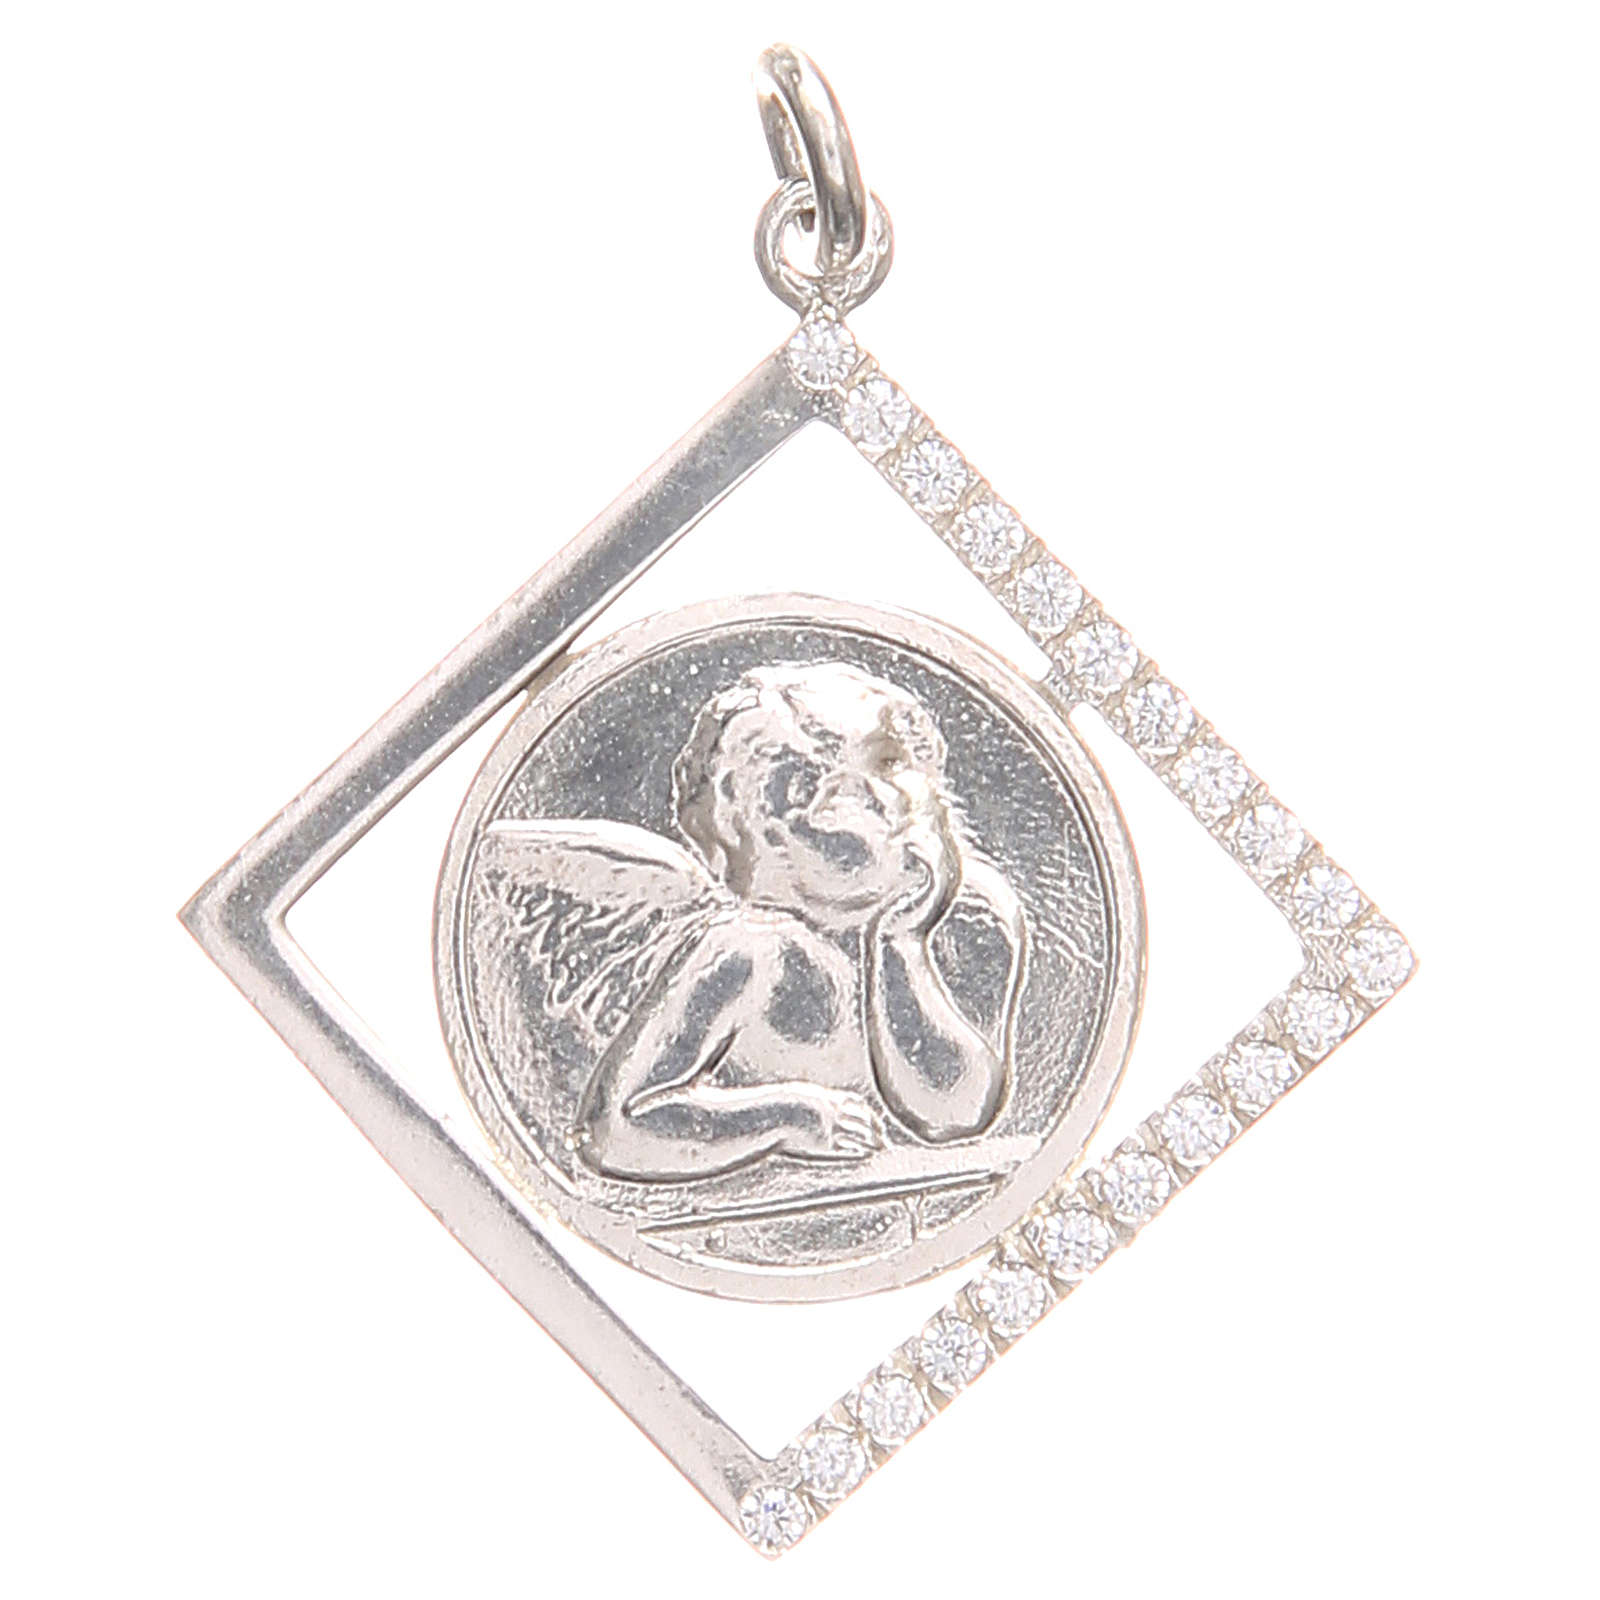 Pendant charm in 925 silver with Raphael's angel 1.7x1.7cm 4